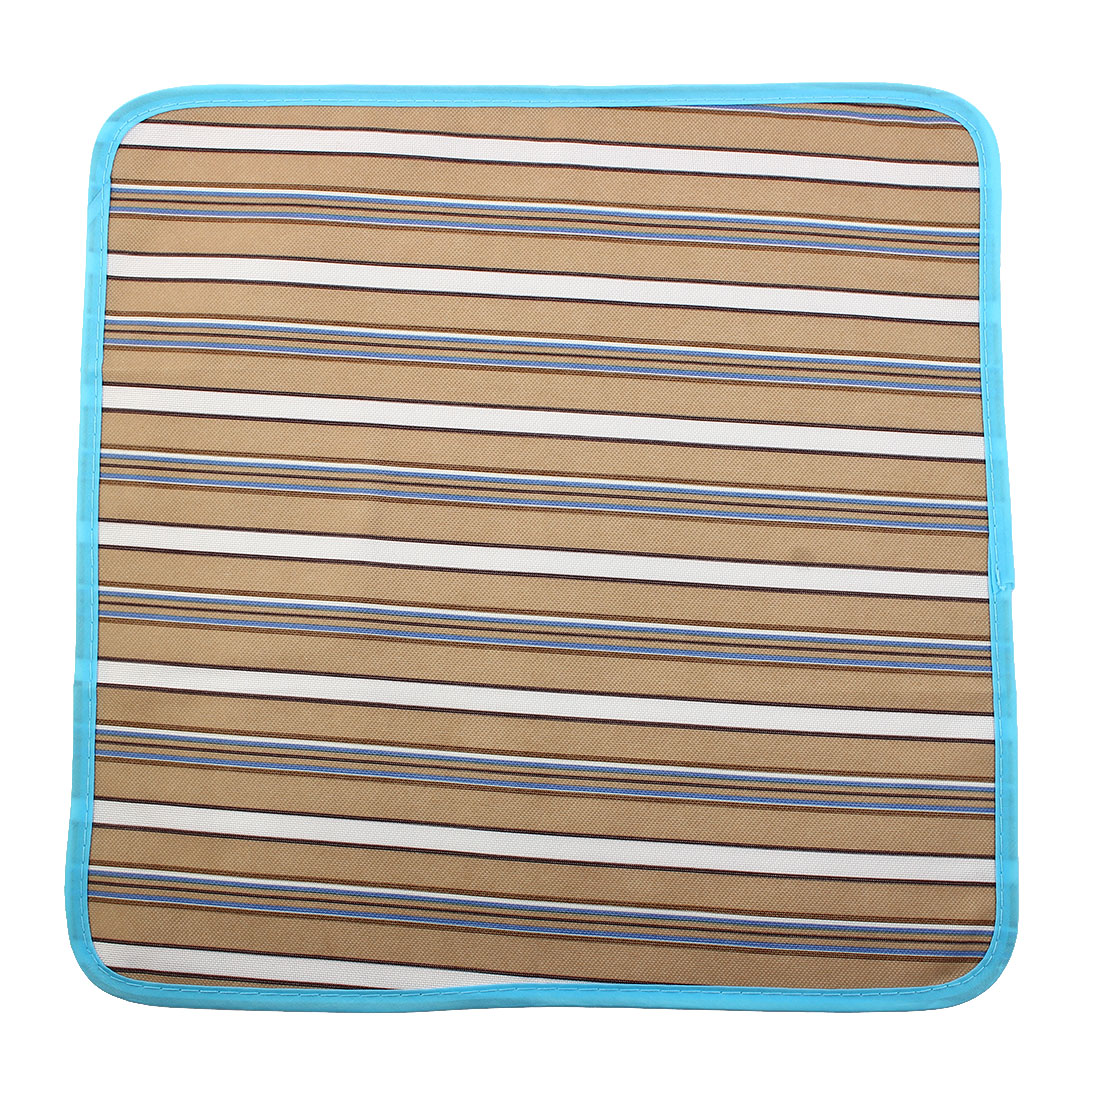 Travel Stripe Pattern Moisture-proof Picnic Blanket Camping Foldable Beach Pad